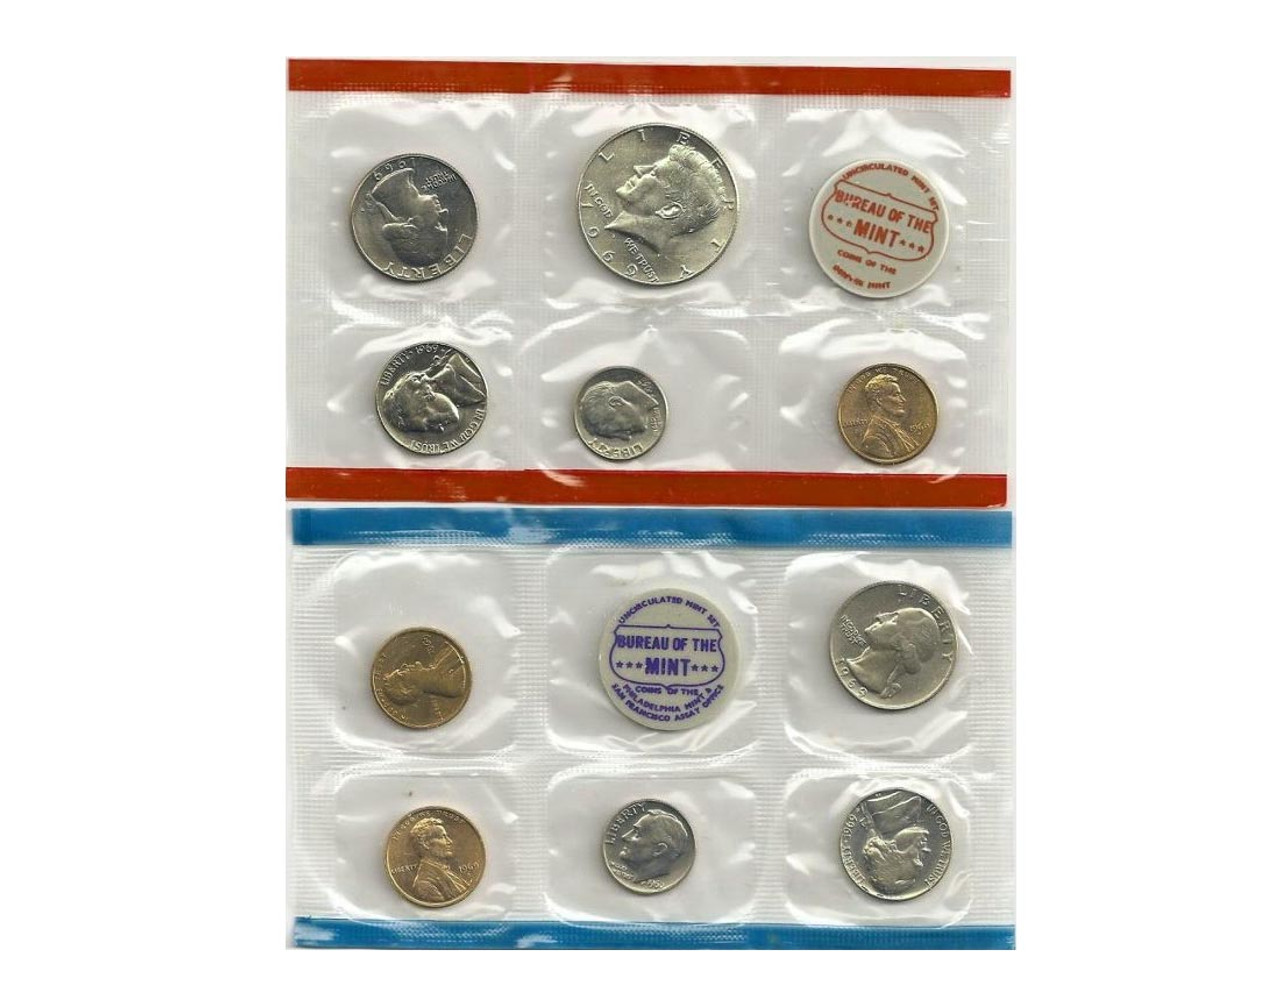 Mint Set 1969 Us Mint Set